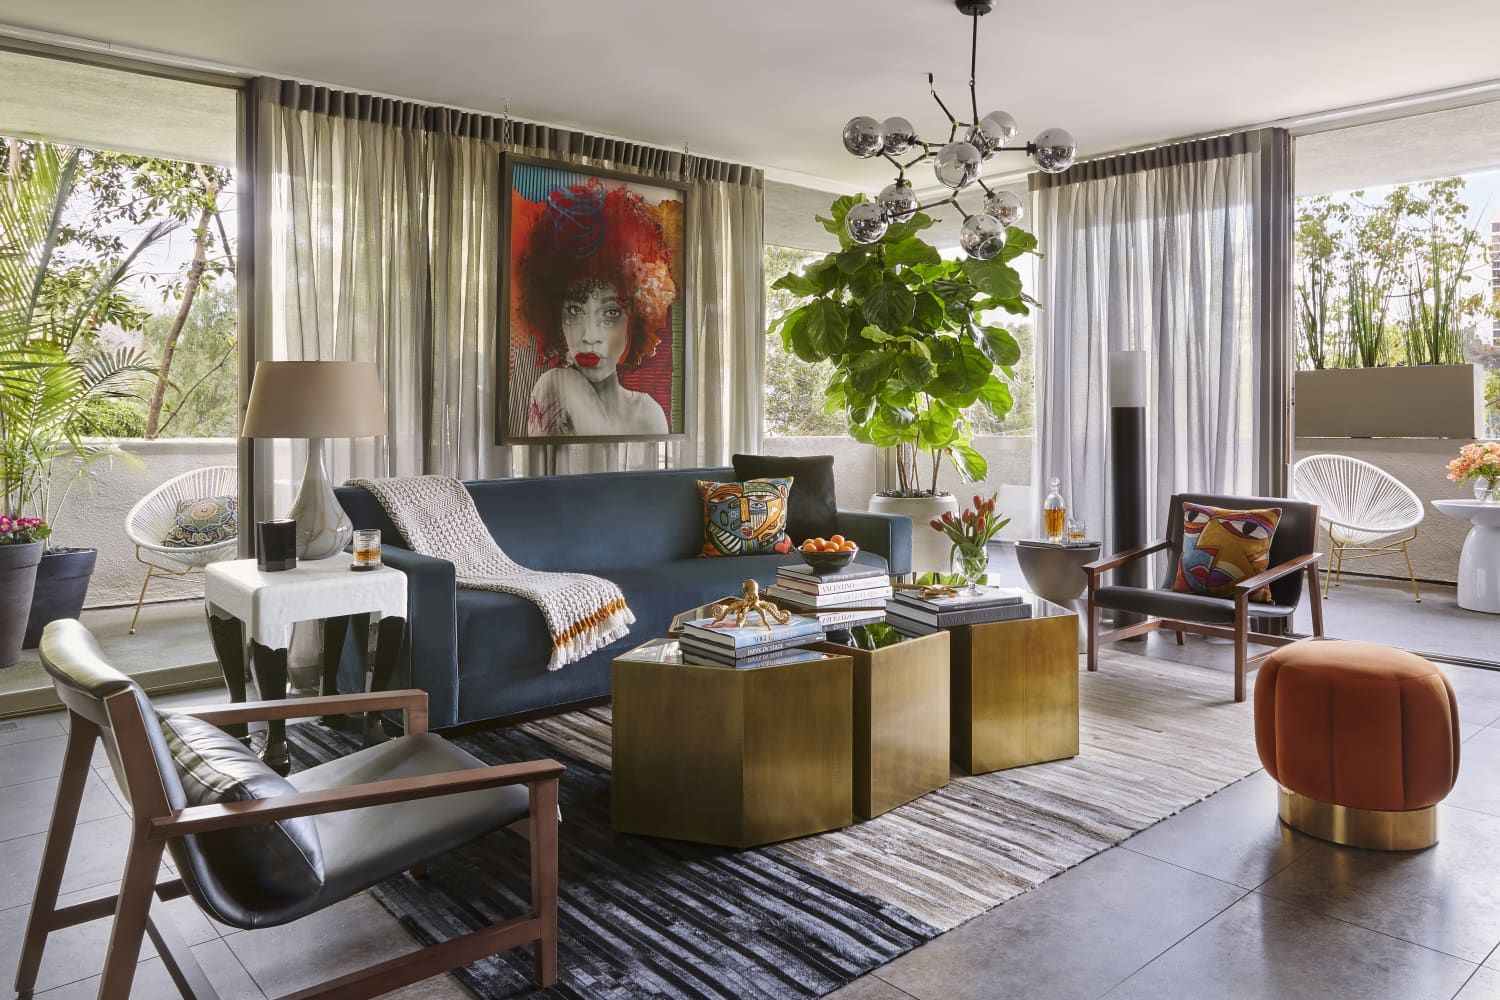 8 Unexpected Color Combinations Interior Designers Are Loving Right Now